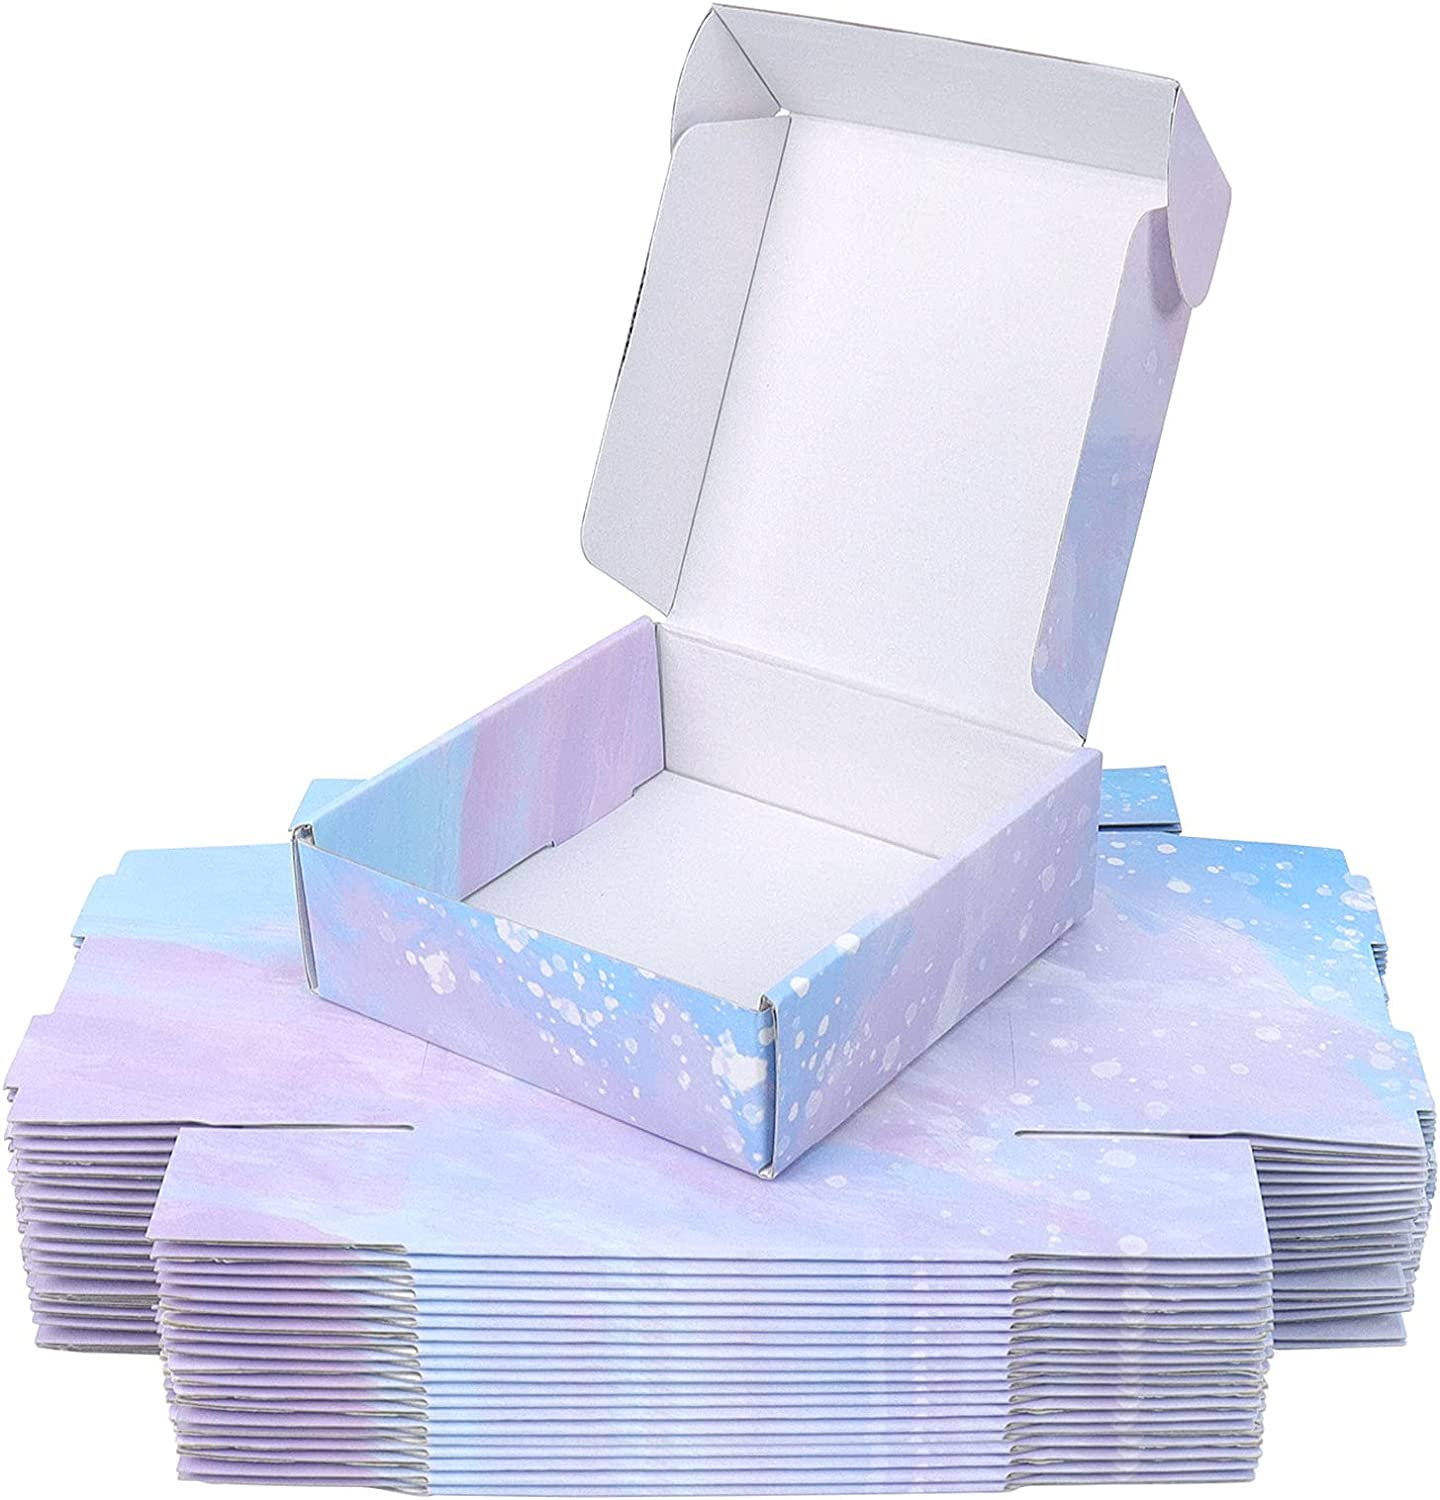 20 Pack Small Mailer Special price for a limited time Boxes Packaging Corrugate 6x6x2 Inches New popularity